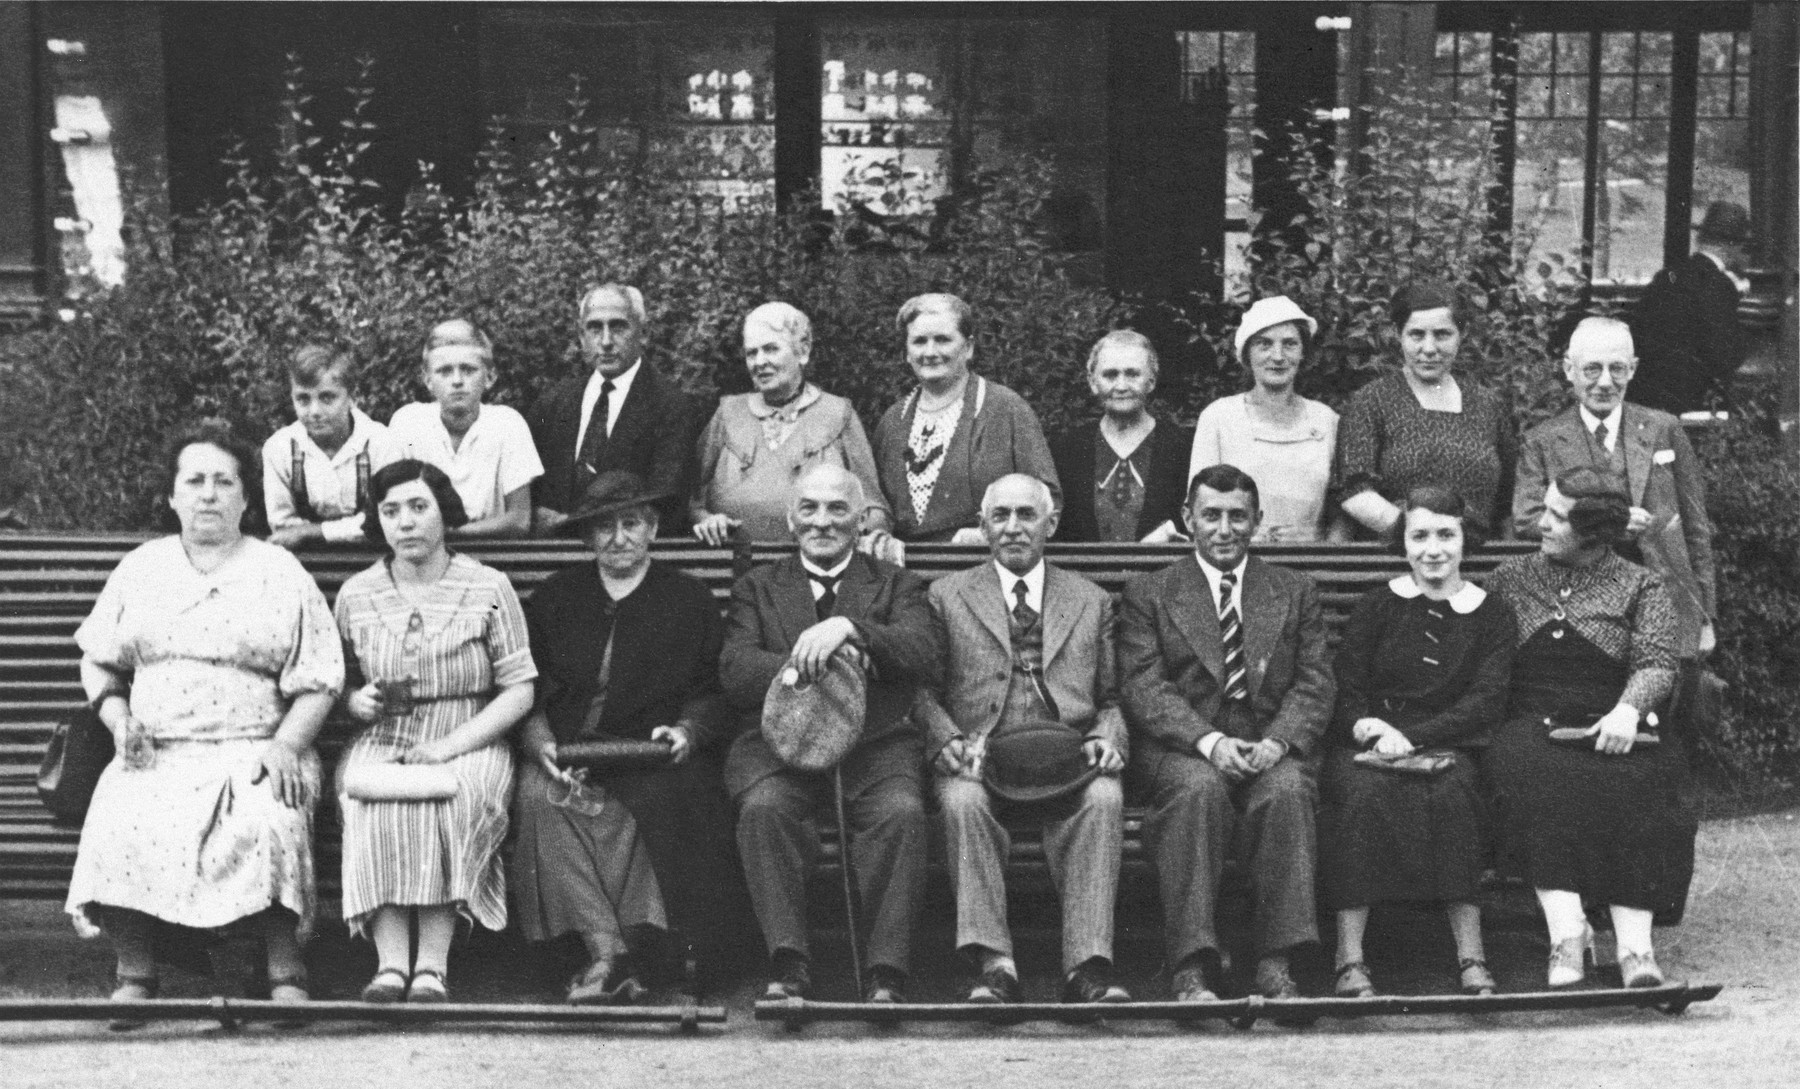 Group portrait of German-Jews seated and standing by a park bench in Berlin.  Among those pictured are Sara and Simon Deutschkron (first row, third and fourth from the left), grandparents of Ruth Cohn.